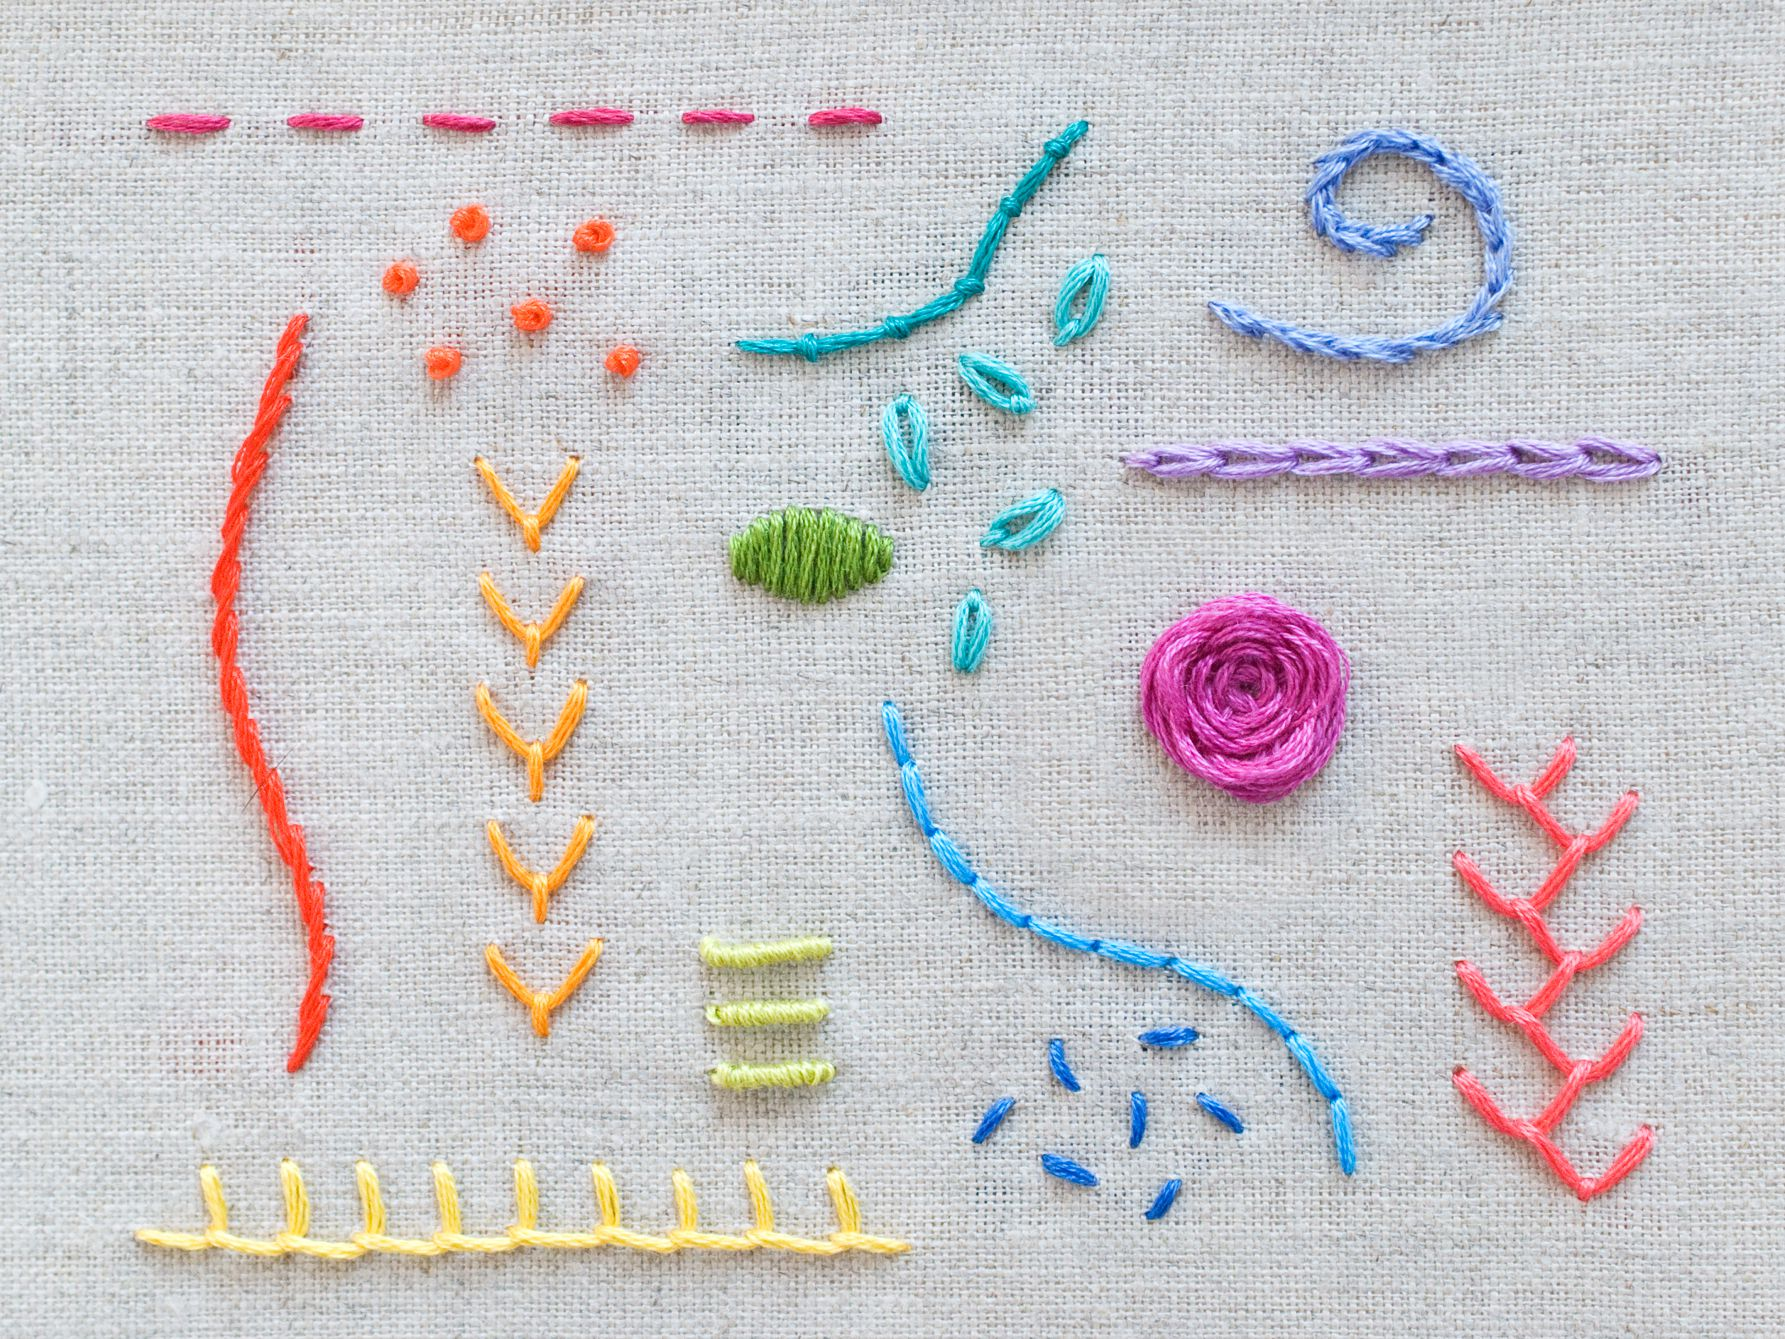 20 Stitches Every Embroiderer Should Know